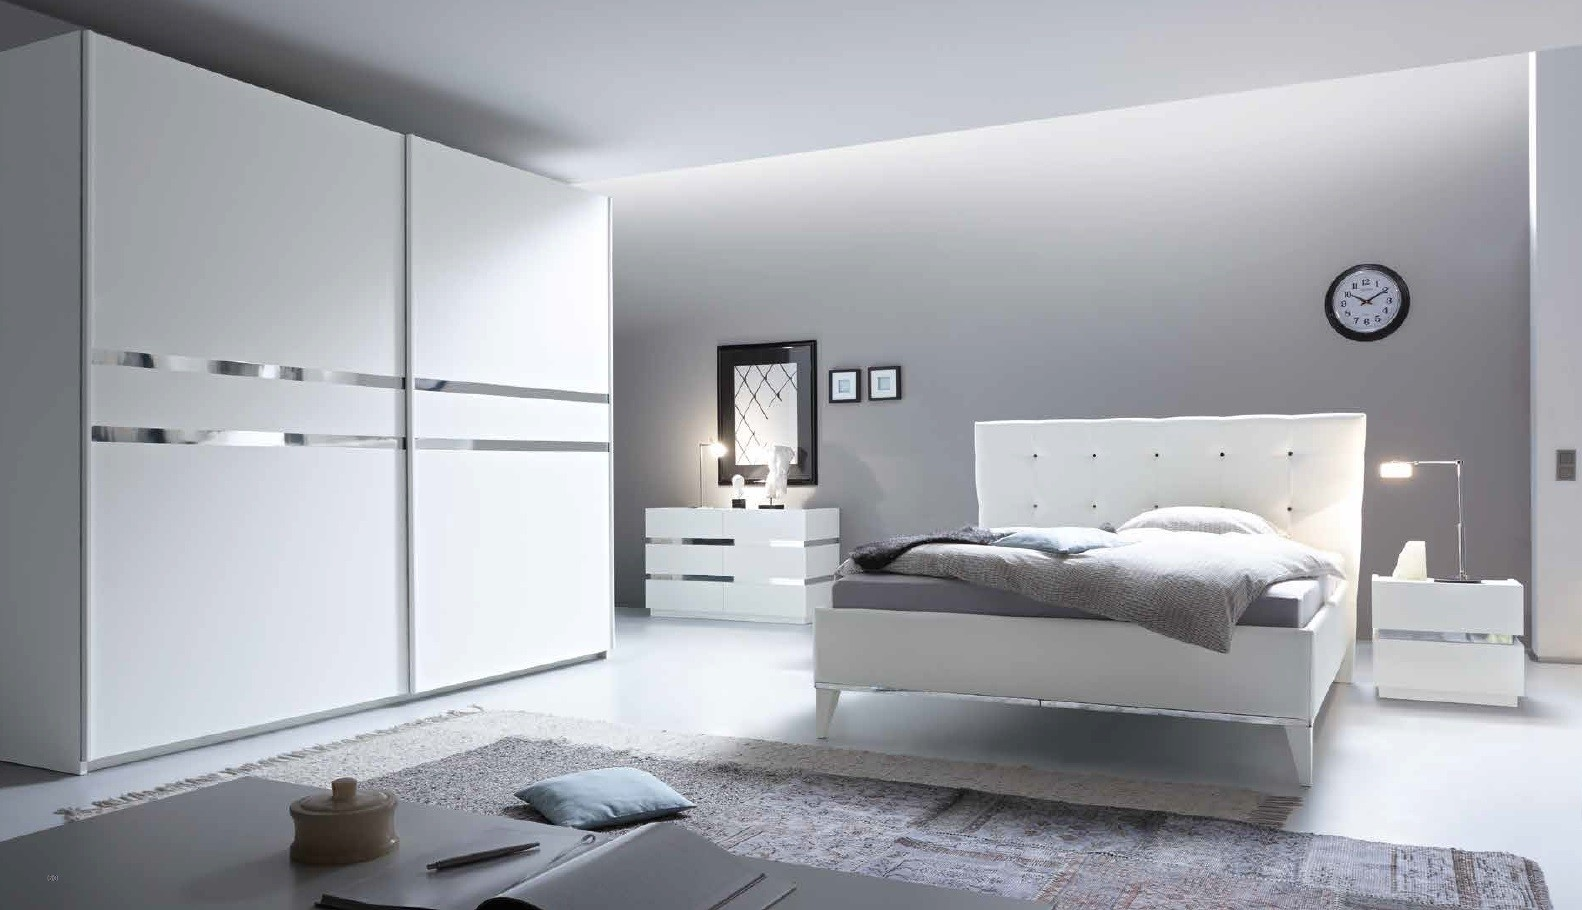 chambre a coucher compl te moderne blanche prix promo. Black Bedroom Furniture Sets. Home Design Ideas